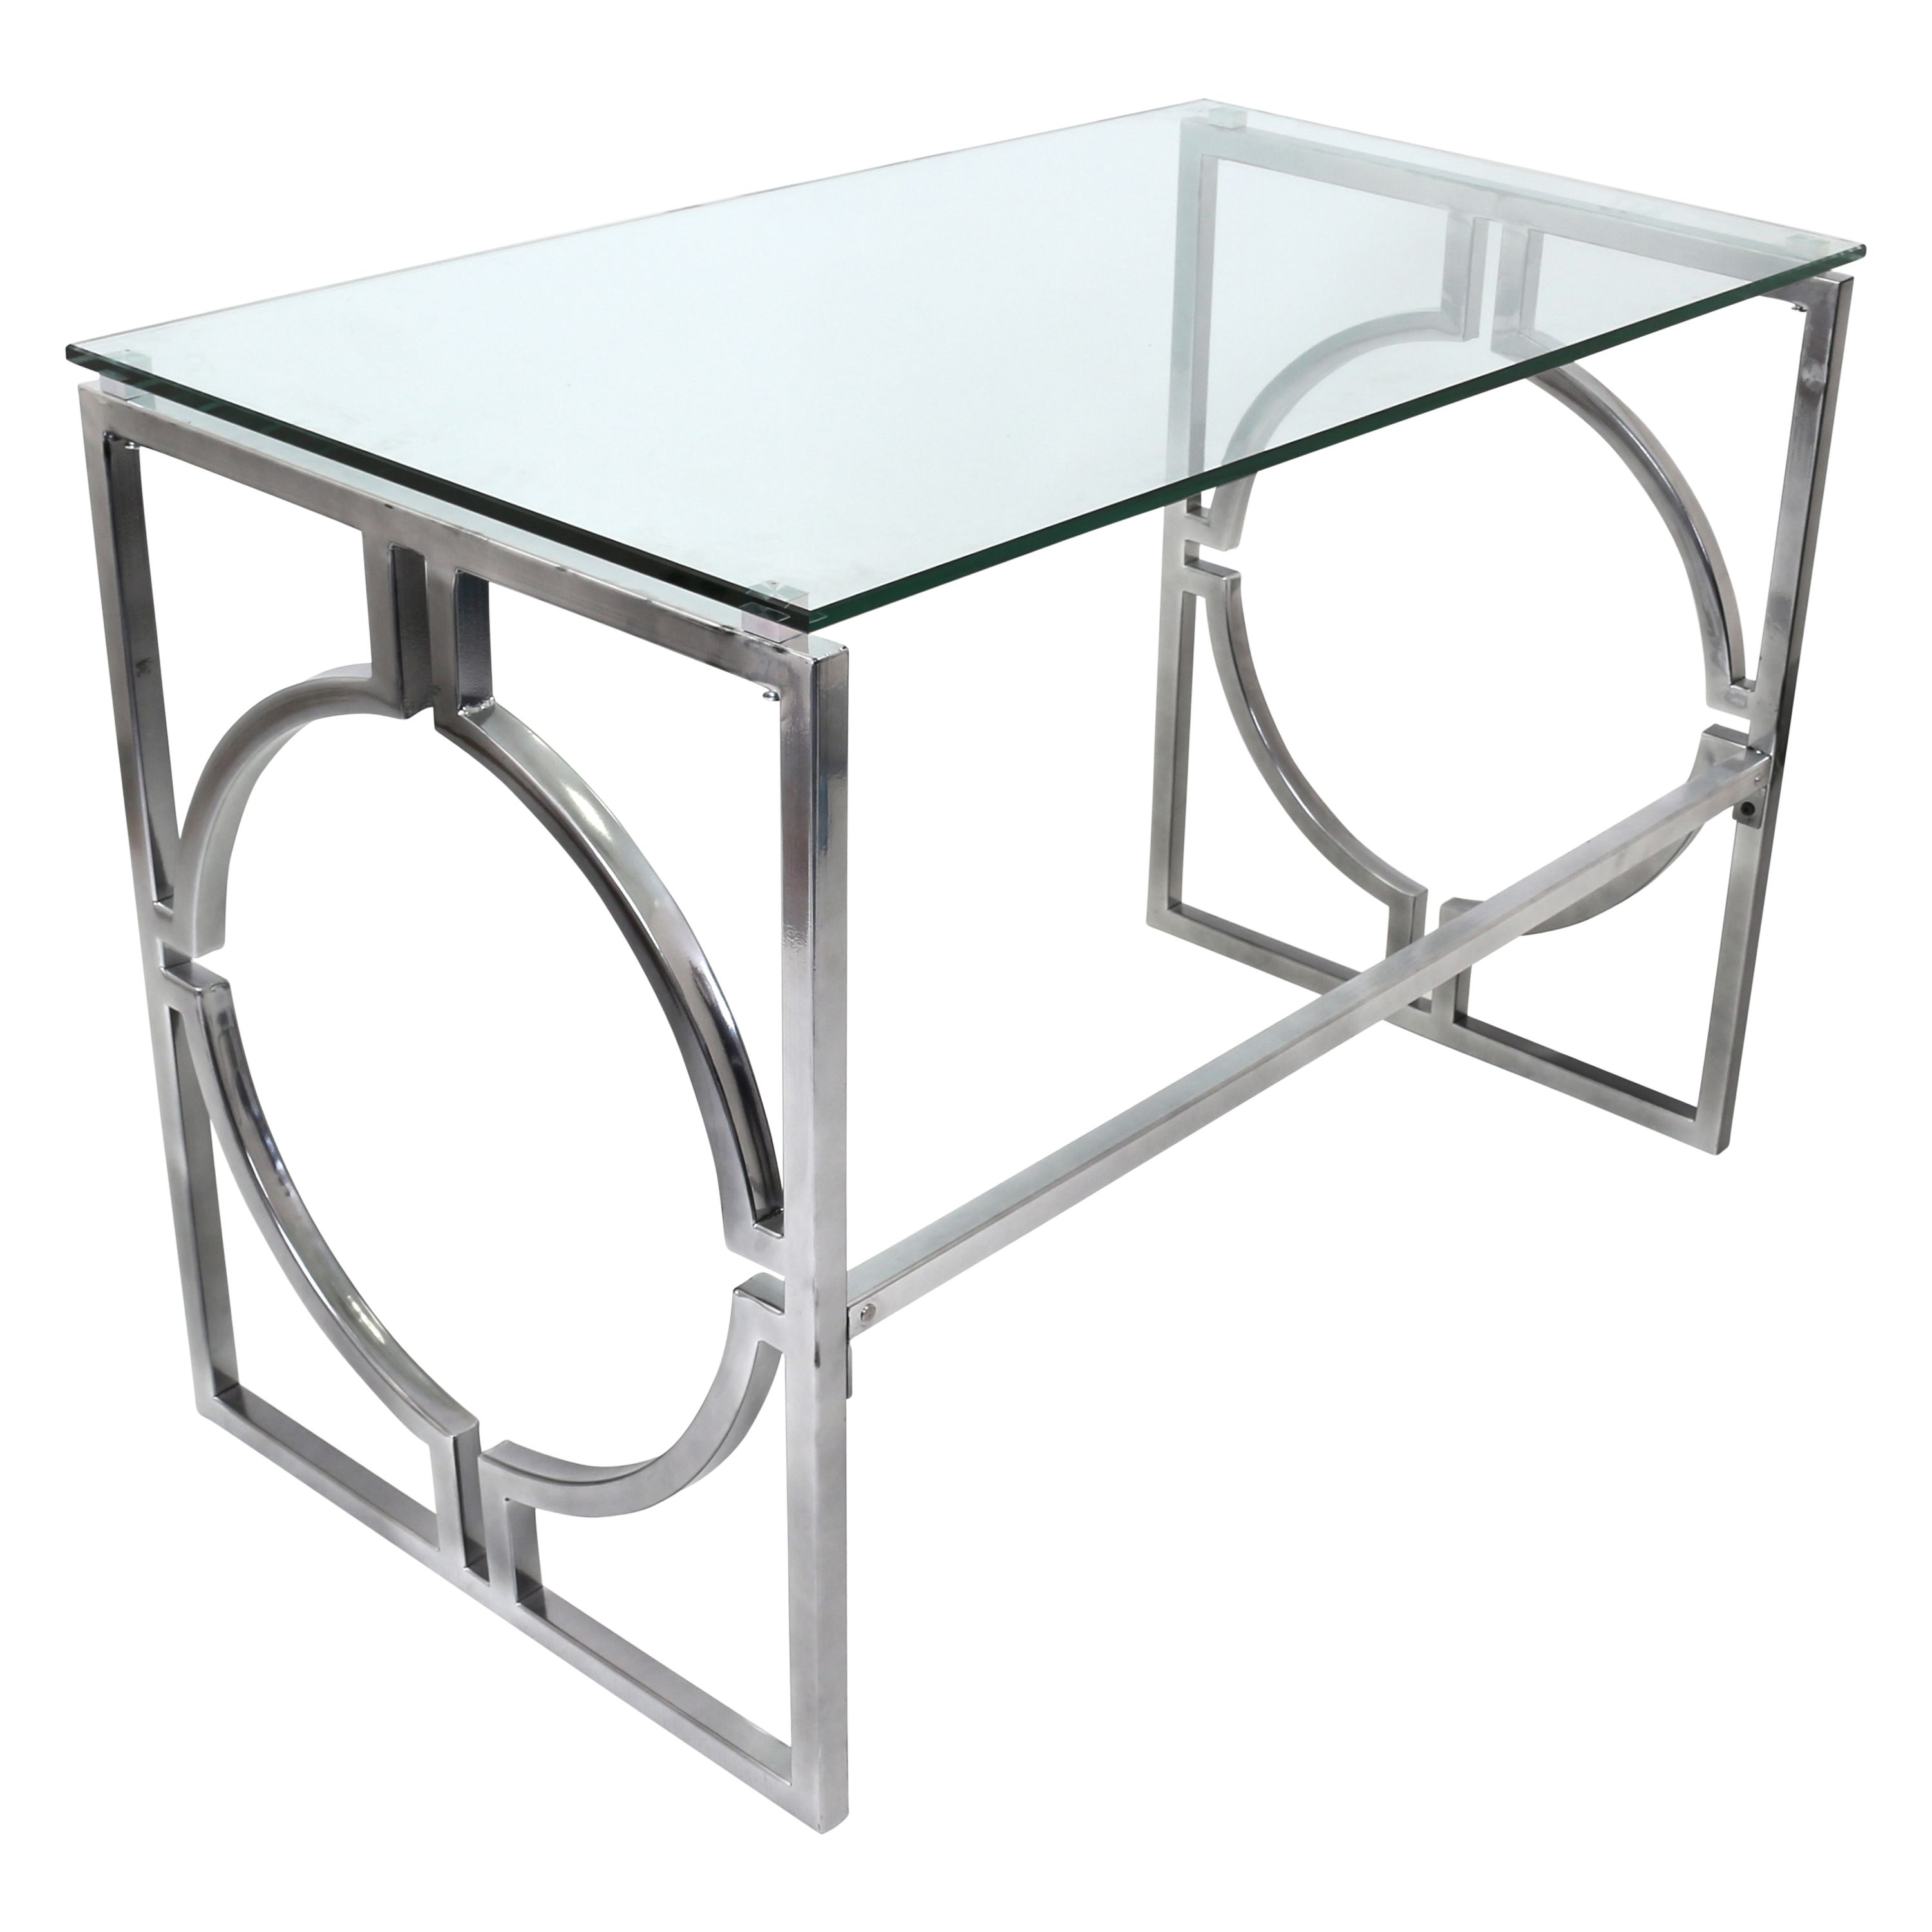 Executive office table with glass top the sleek geometric design of the desk frame is emphasized by the